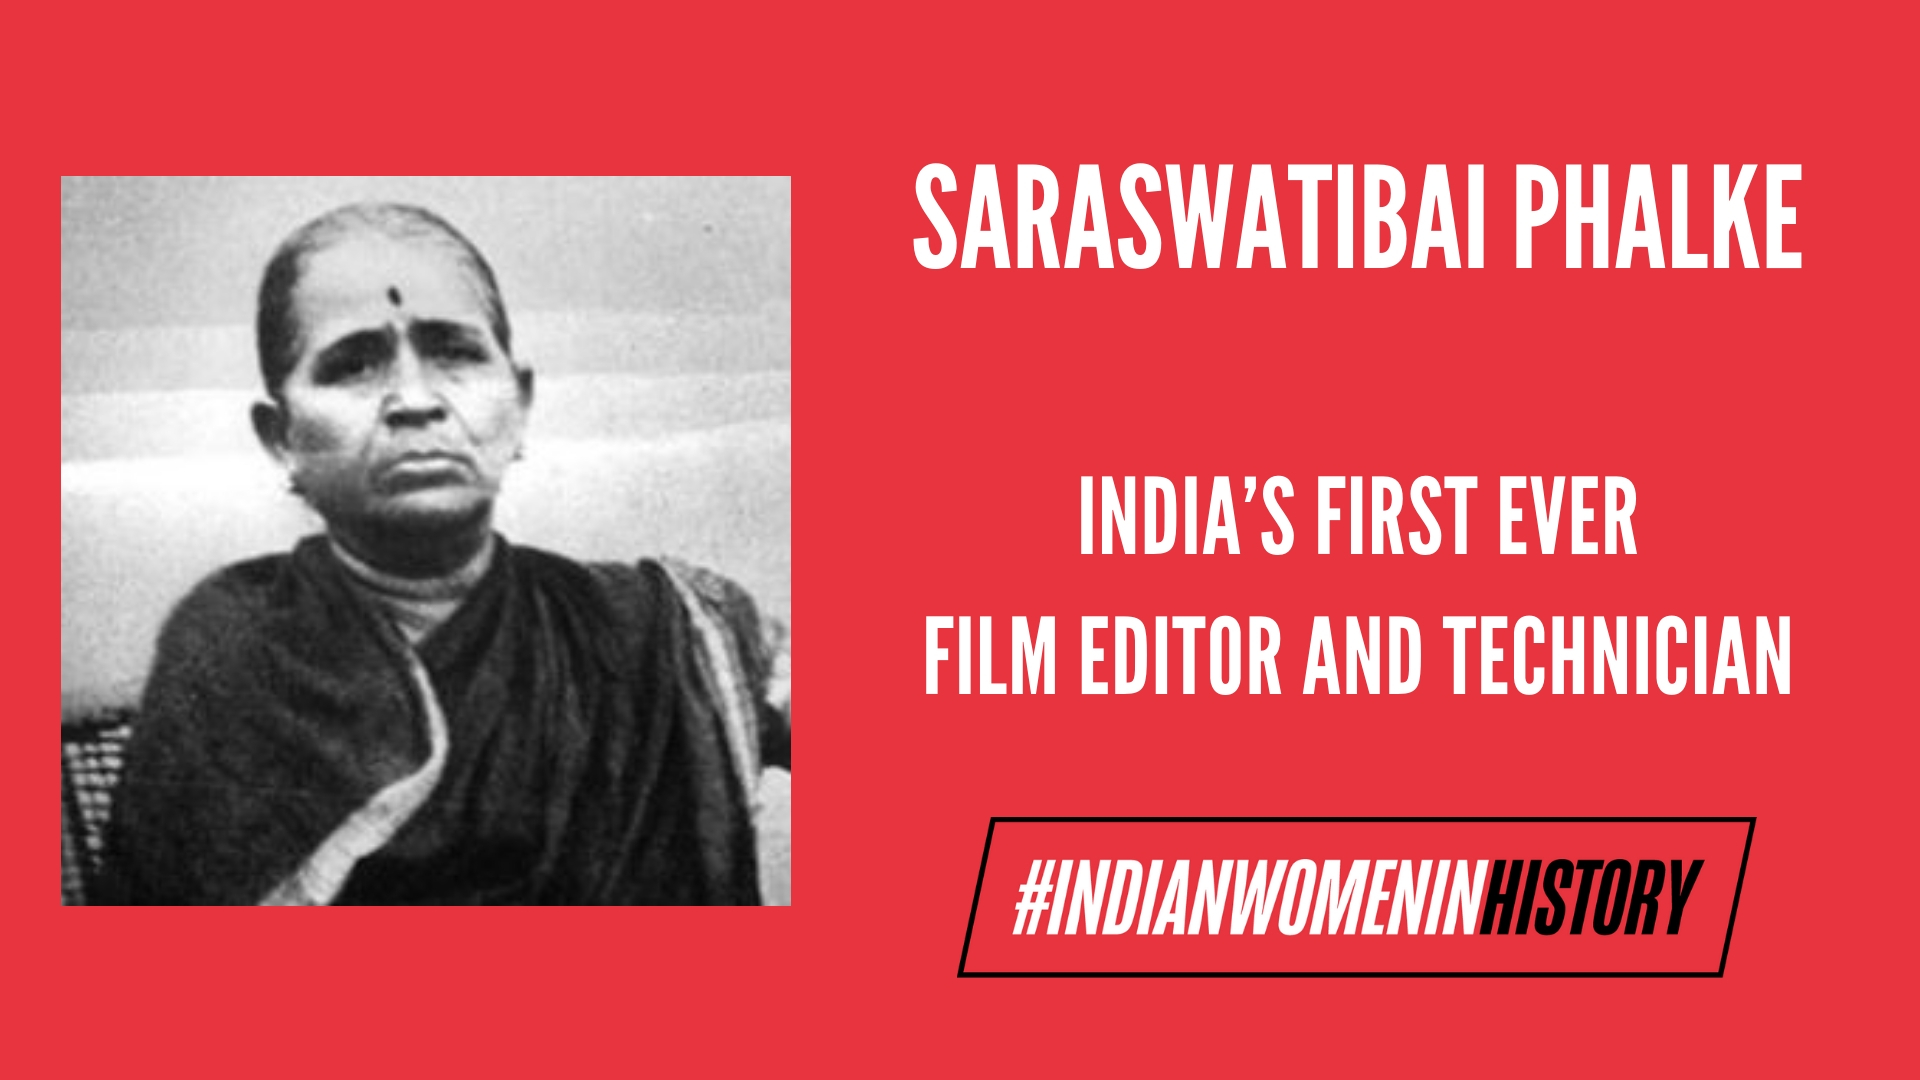 Saraswatibai Phalke: India's First Film Technician And Editor| #IndianWomenInHistory